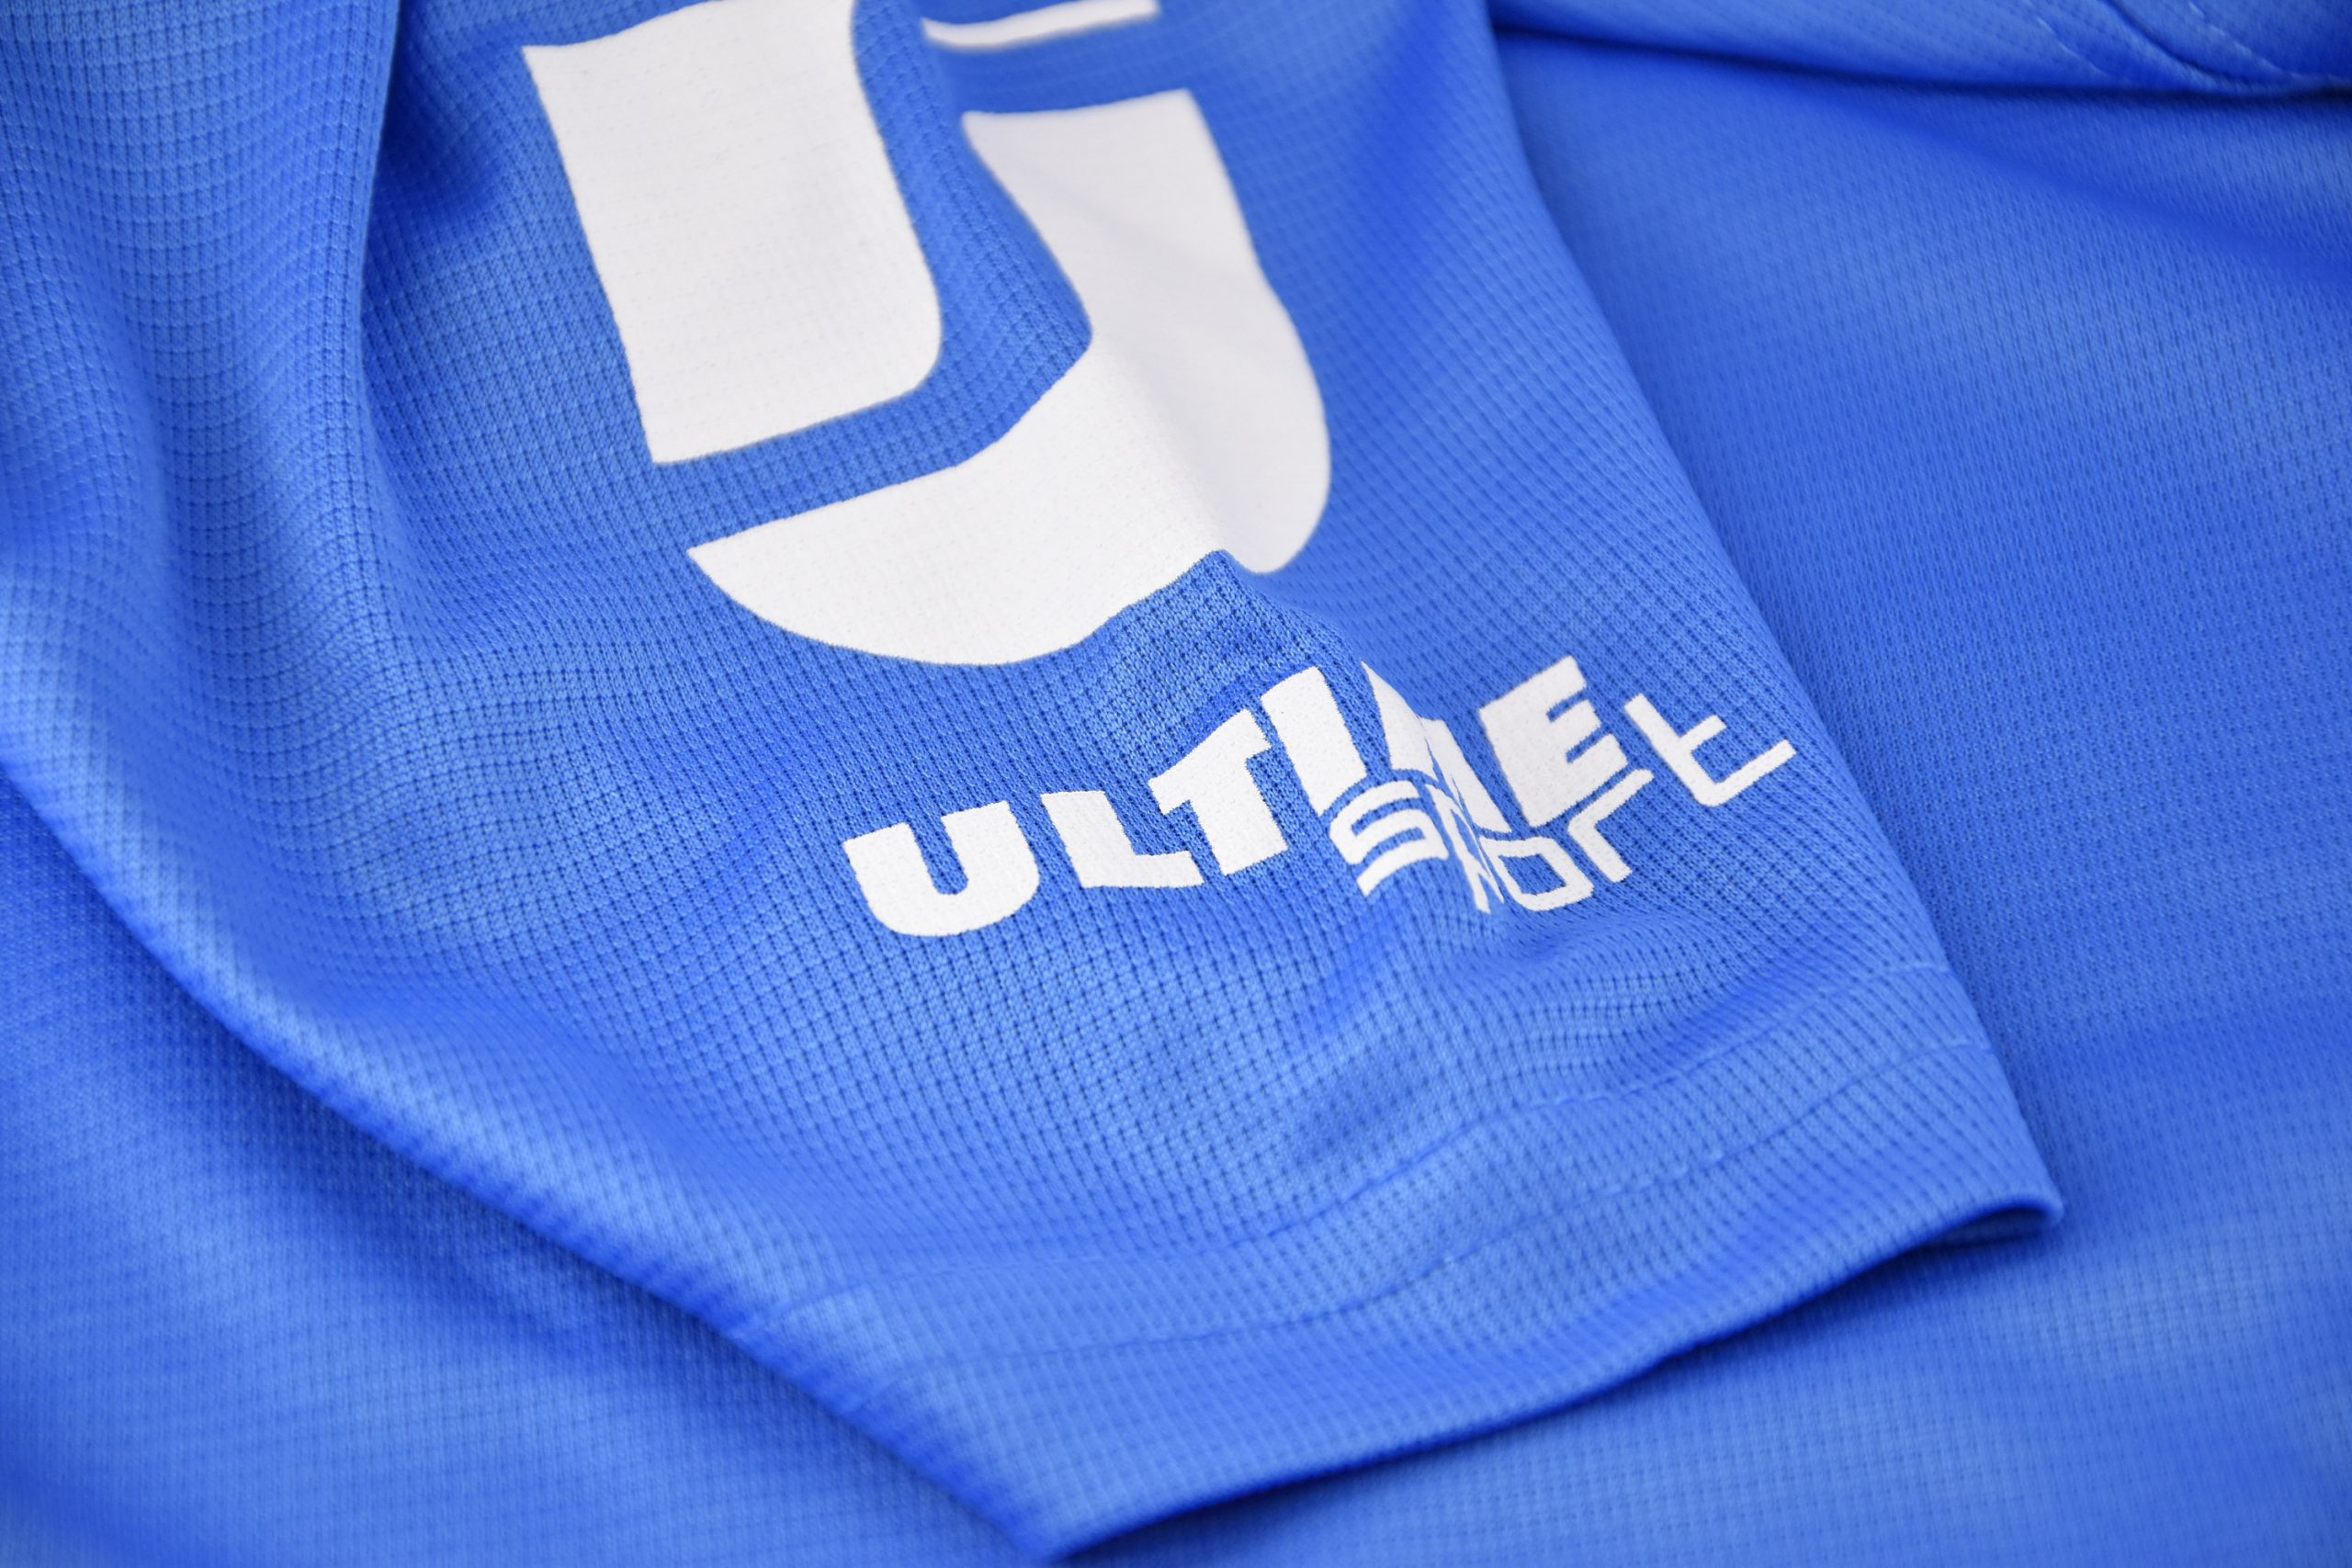 Presentation of the company Ultime Sport